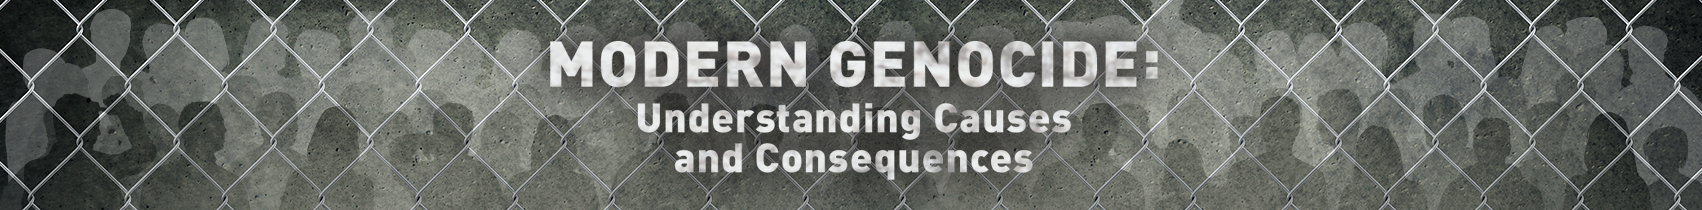 ABC-CLIO Solutions - Modern Genocide: Understanding Causes and Consequences